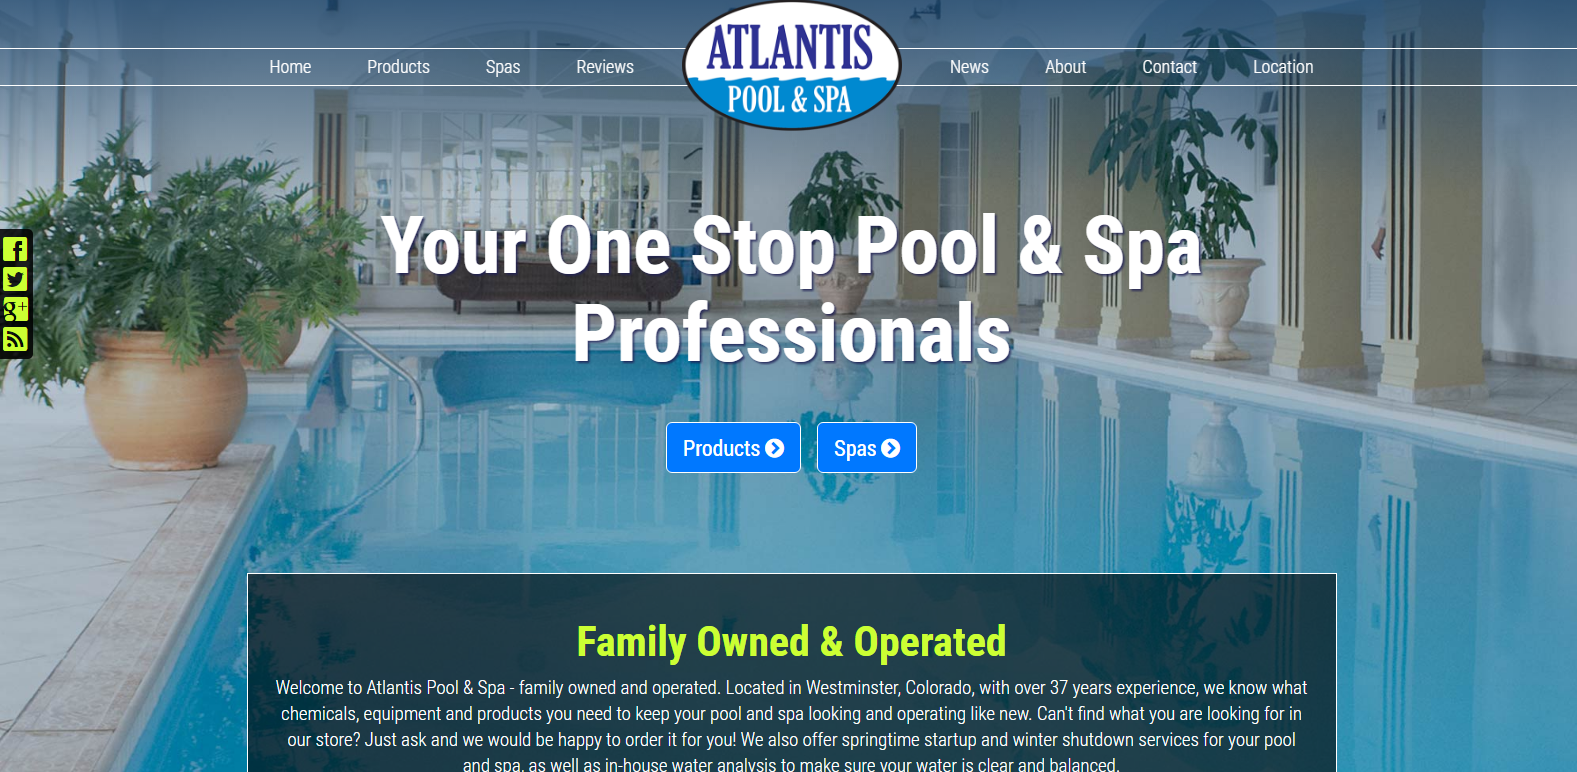 New Upgrade Launched: Atlantis Pool & Spa